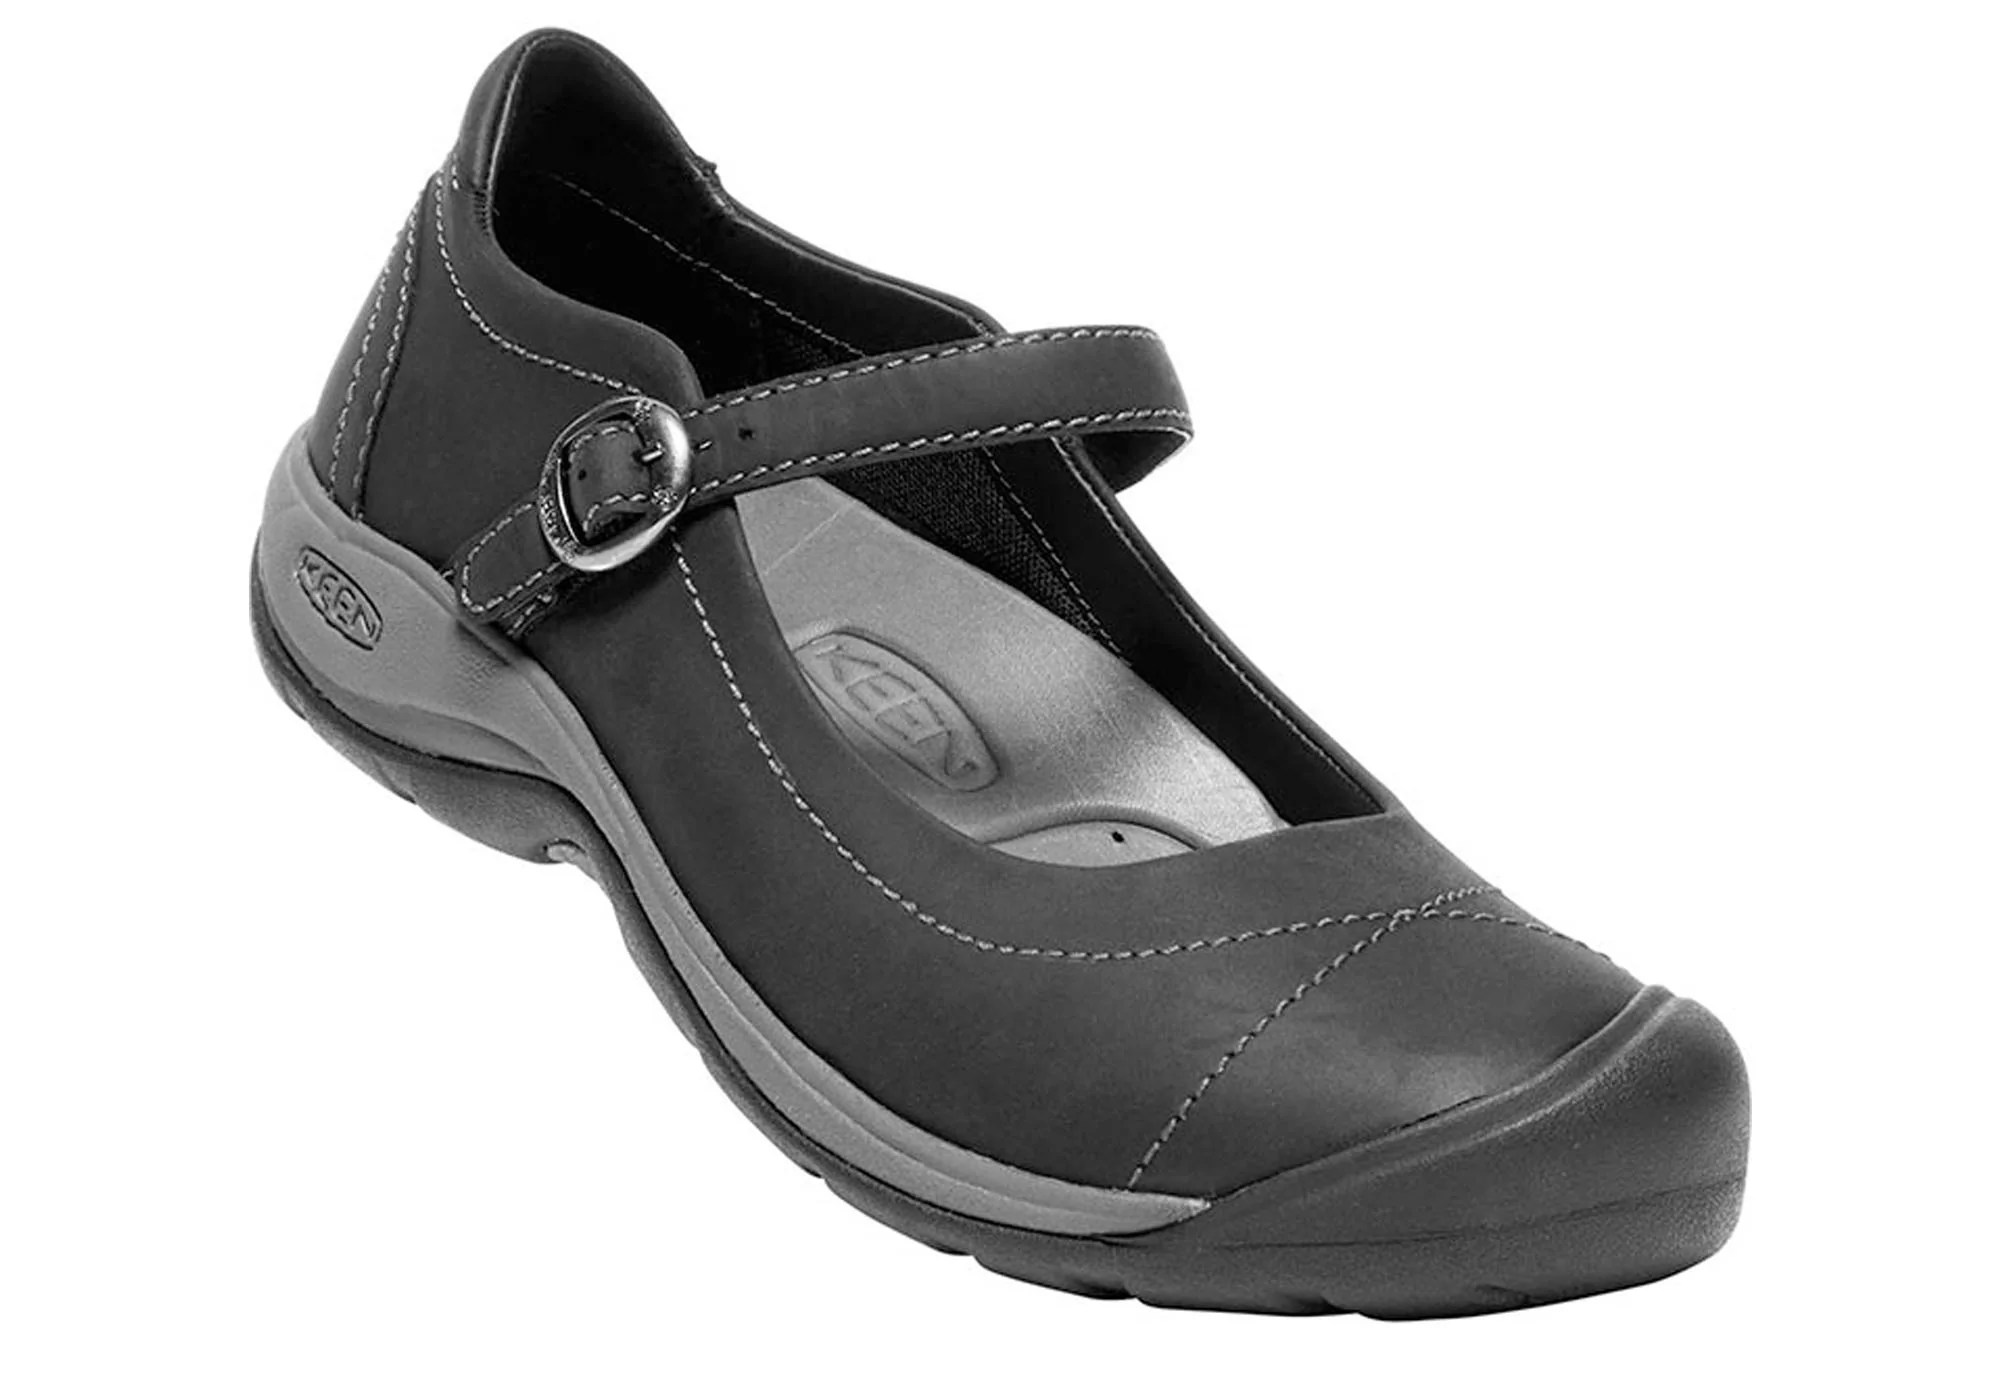 Keen Presidio Ii Mj Womens Leather Comfort Mary Jane Shoes